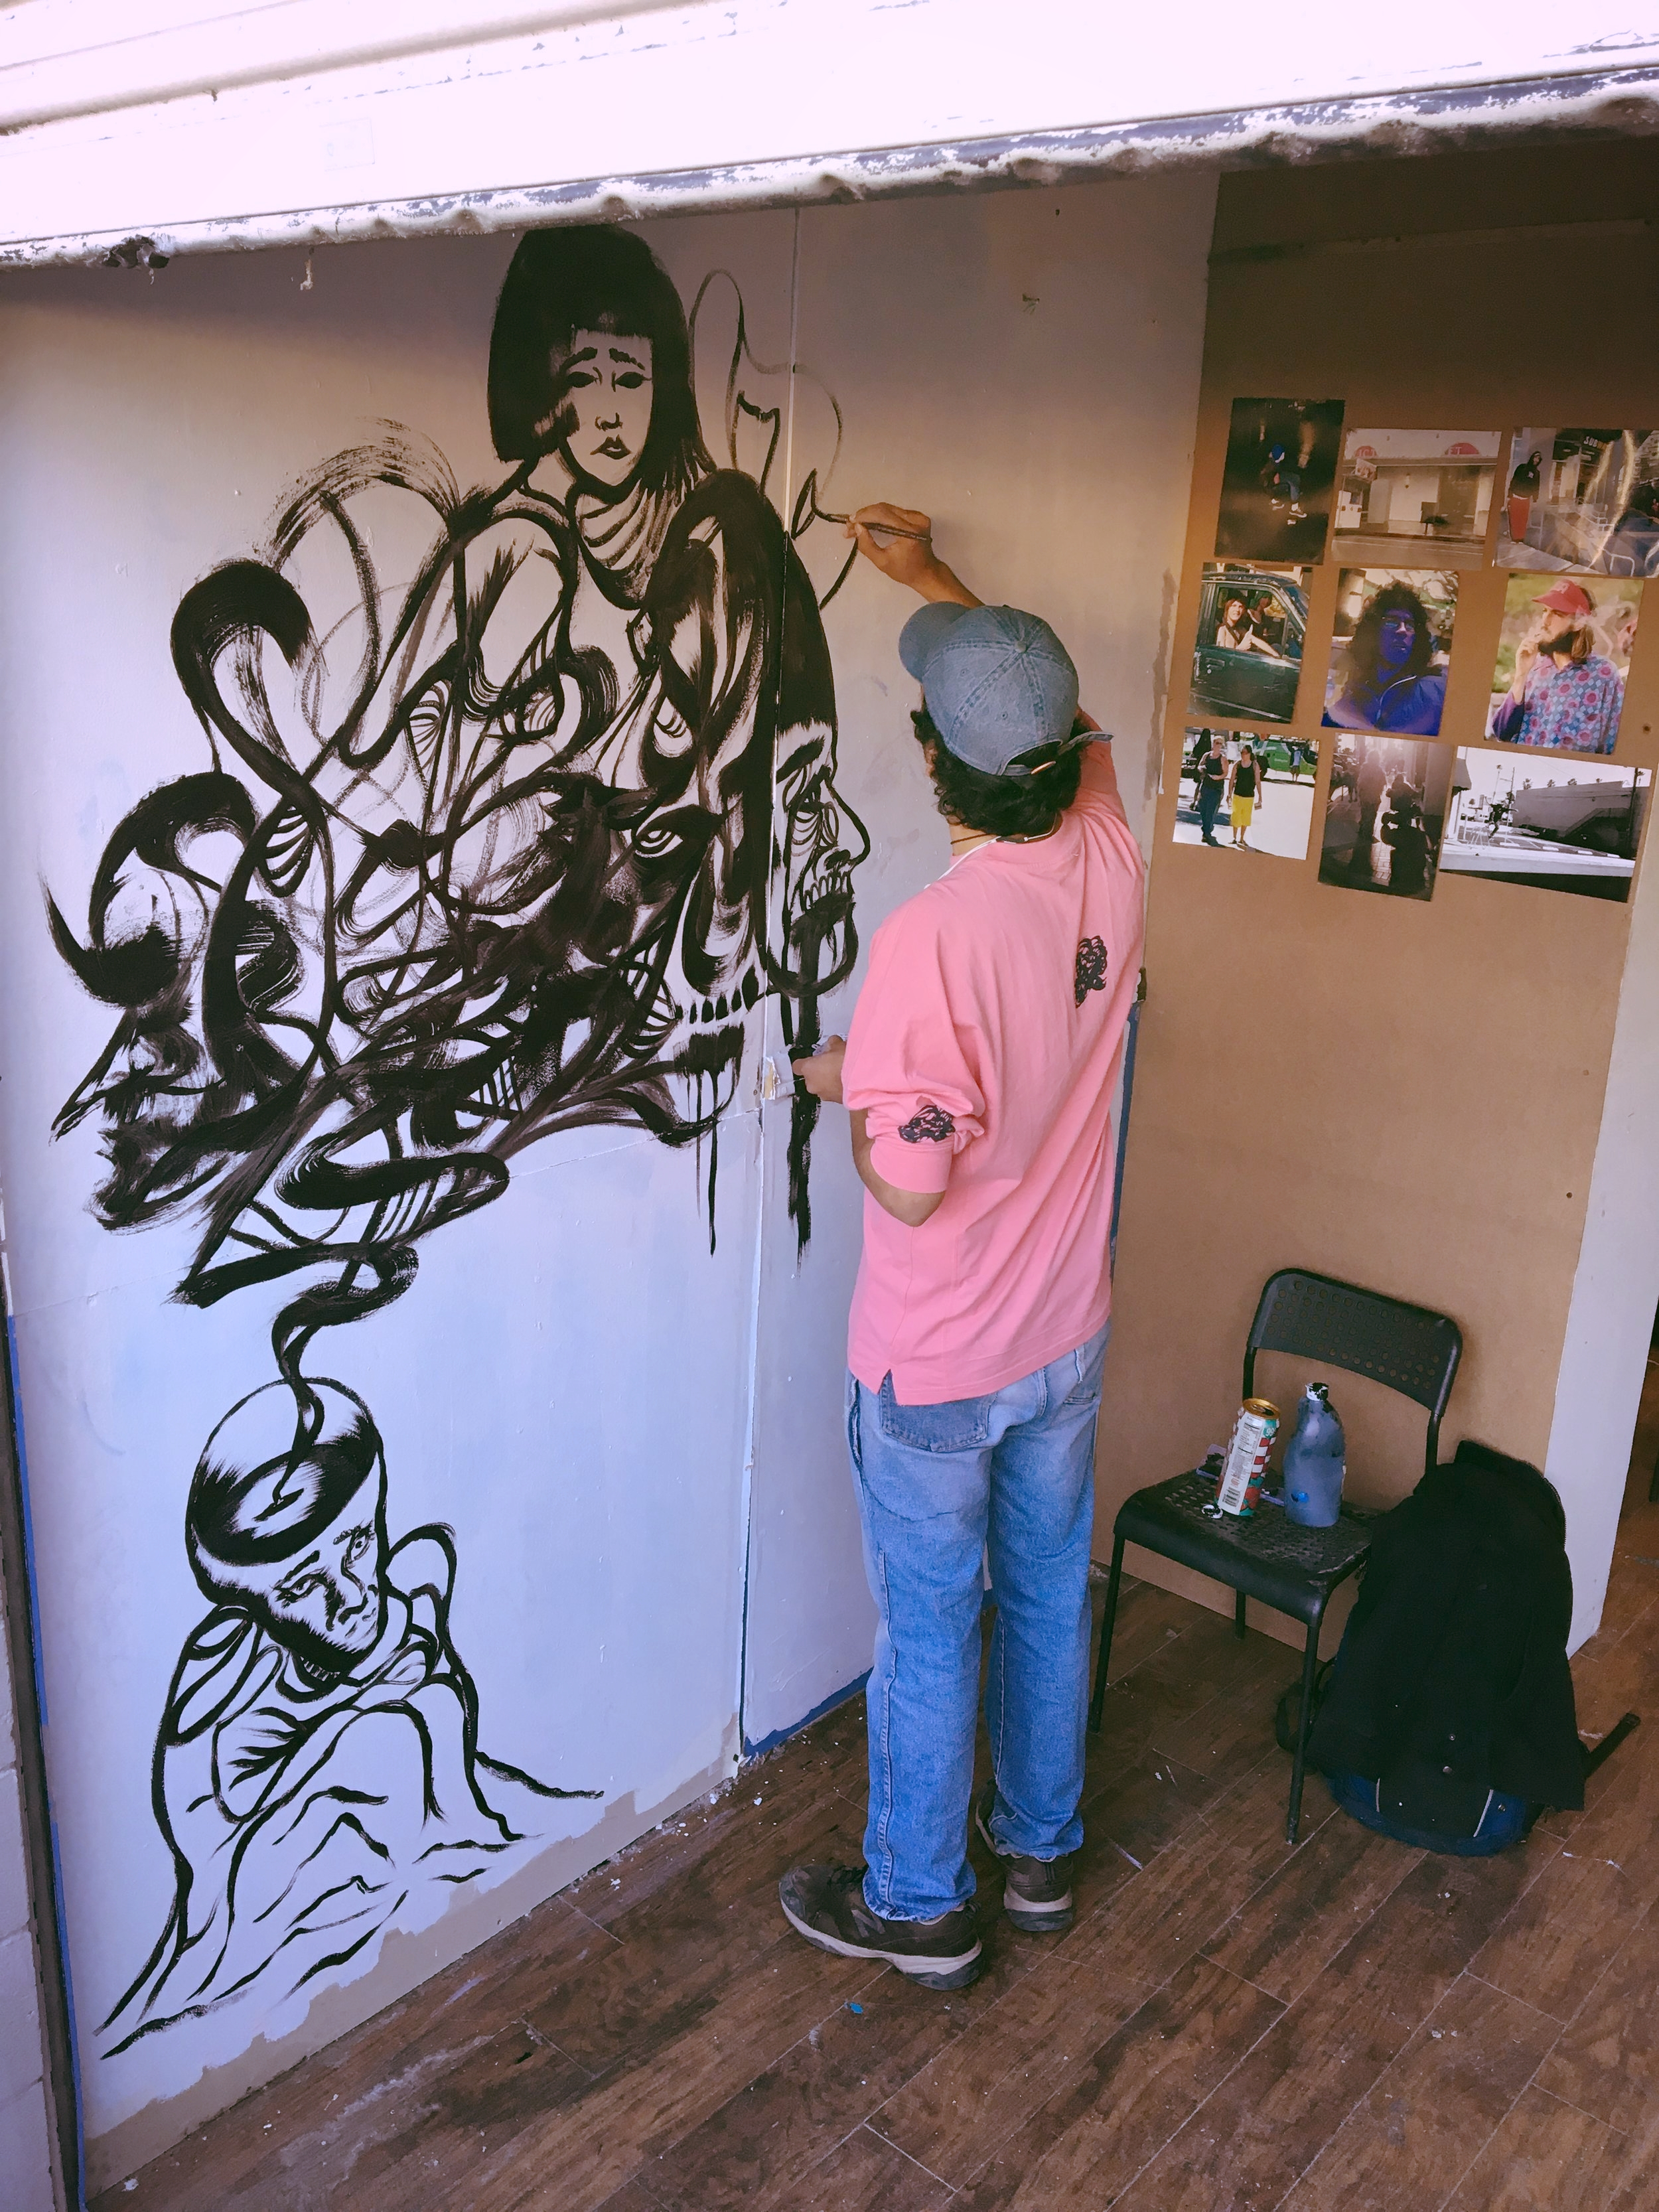 flowing at the KEITA warehouse / studio for art show 1.2017         the BEFORE pic                photographs on wall by Corey V.